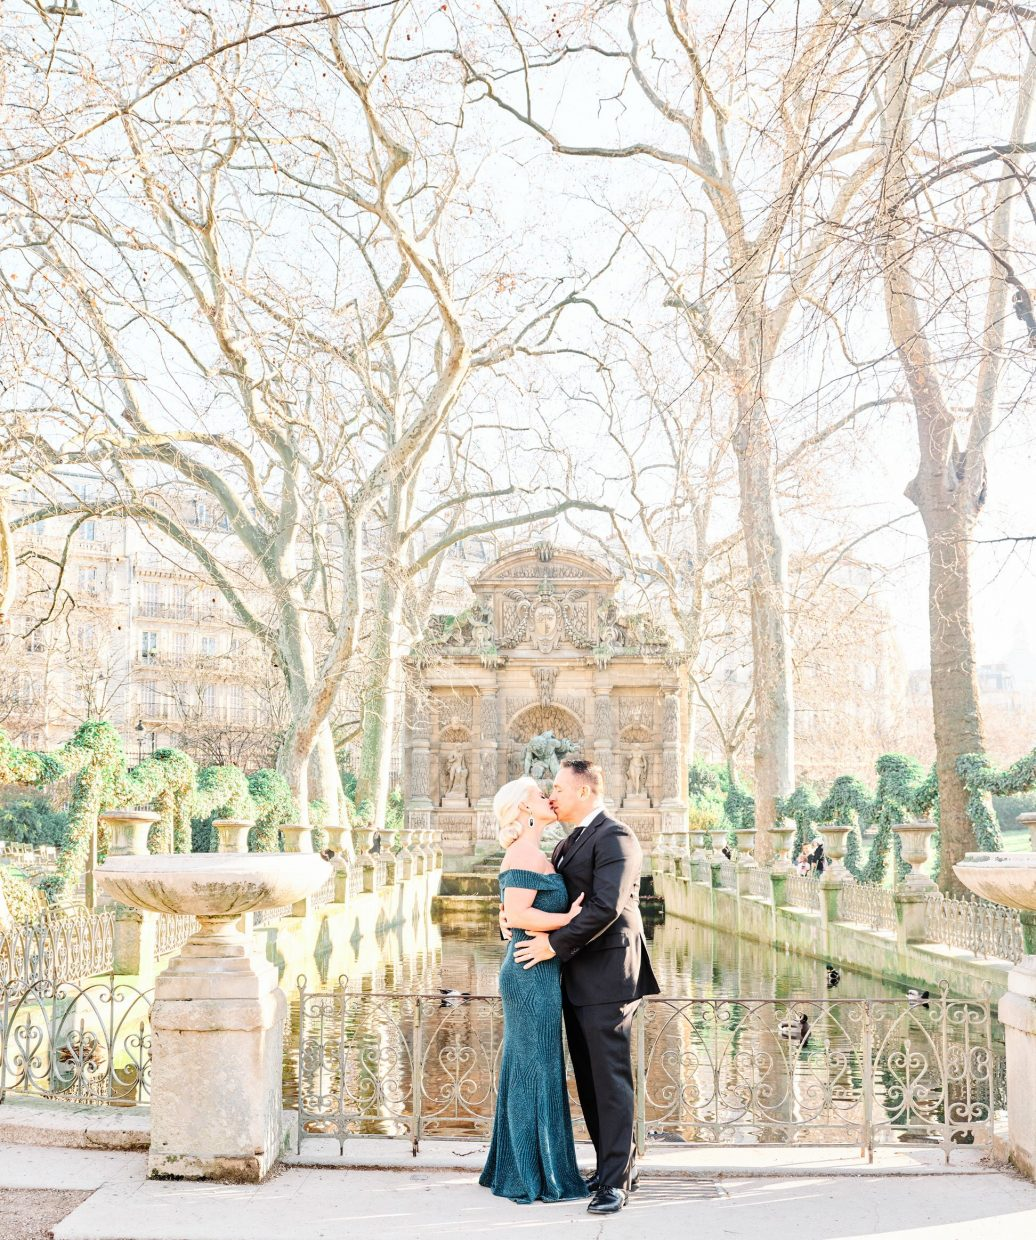 beautiful vow renewal at luxembourg gardens in paris